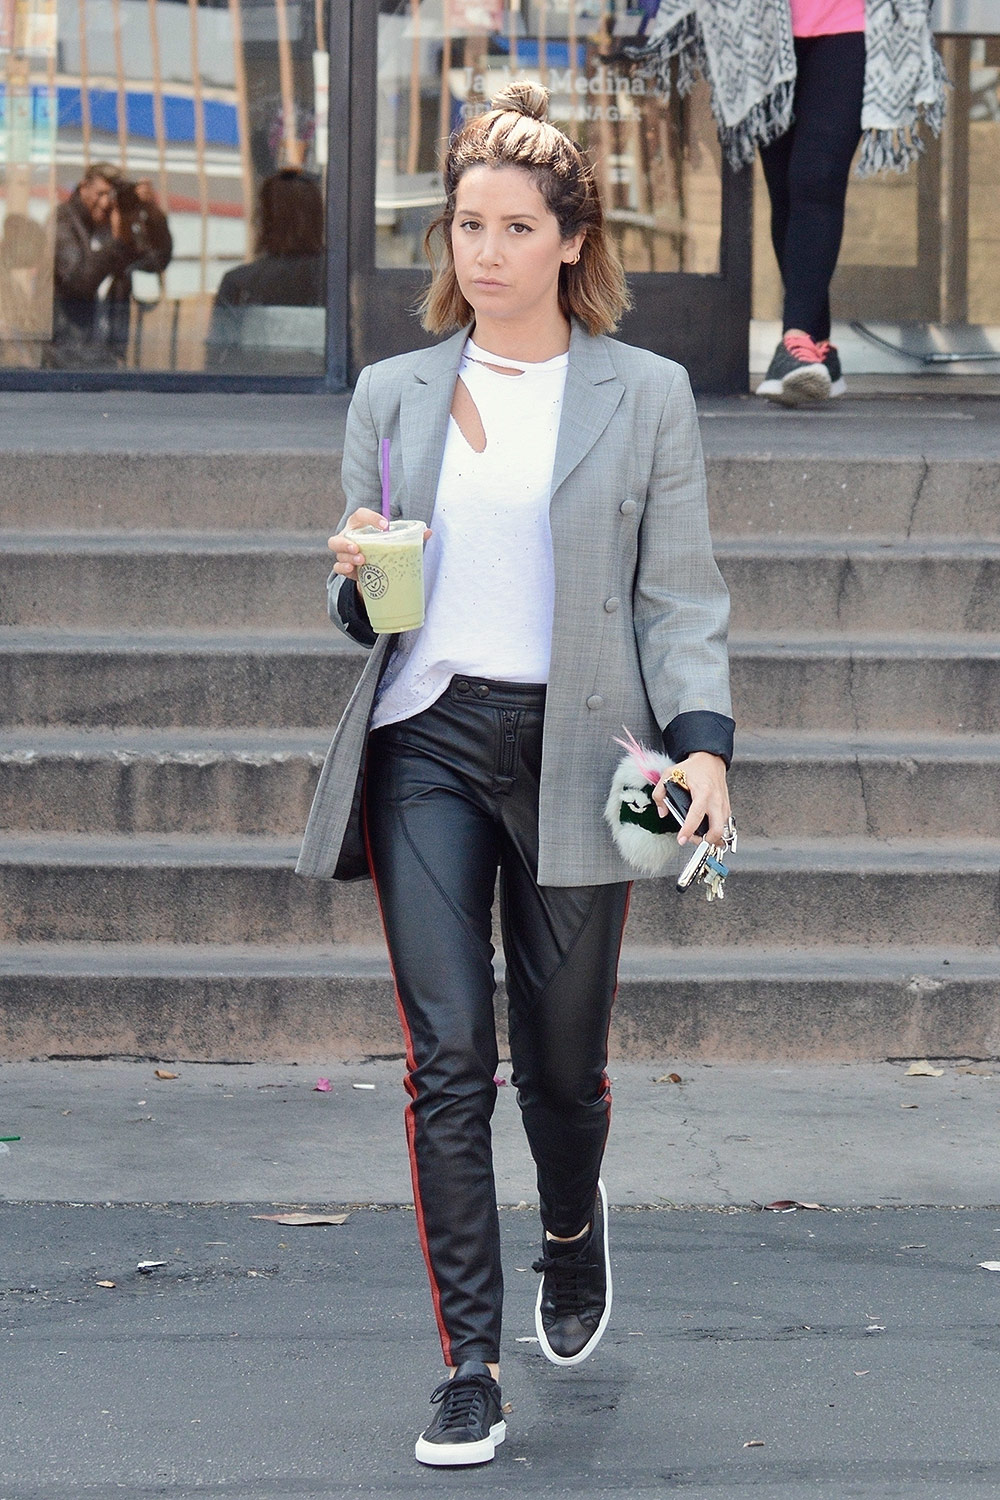 Ashley Tisdale leaving The Coffee Bean & Tea Leaf